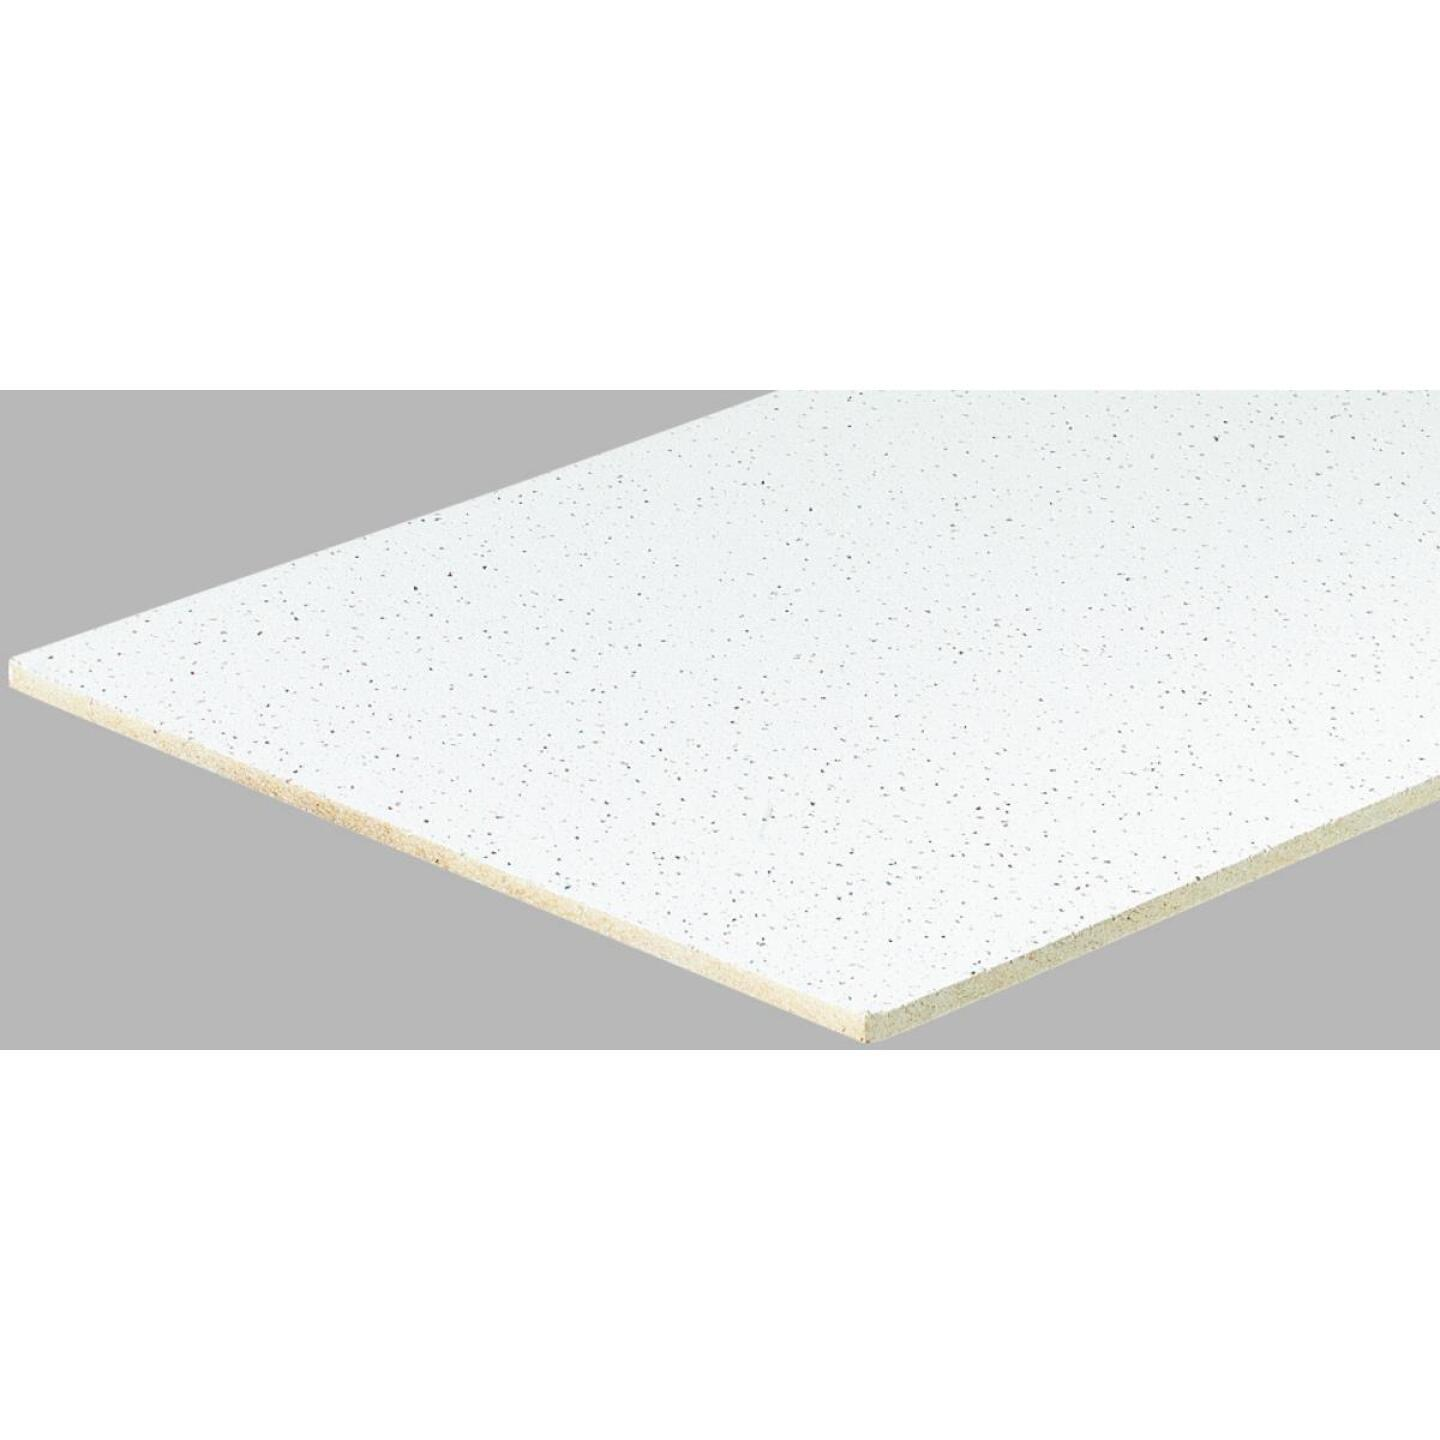 Radar Fissured 2 Ft. x 4 Ft. White Mineral Fiber Square Edge Suspended Ceiling Tile (16-Count) Image 1